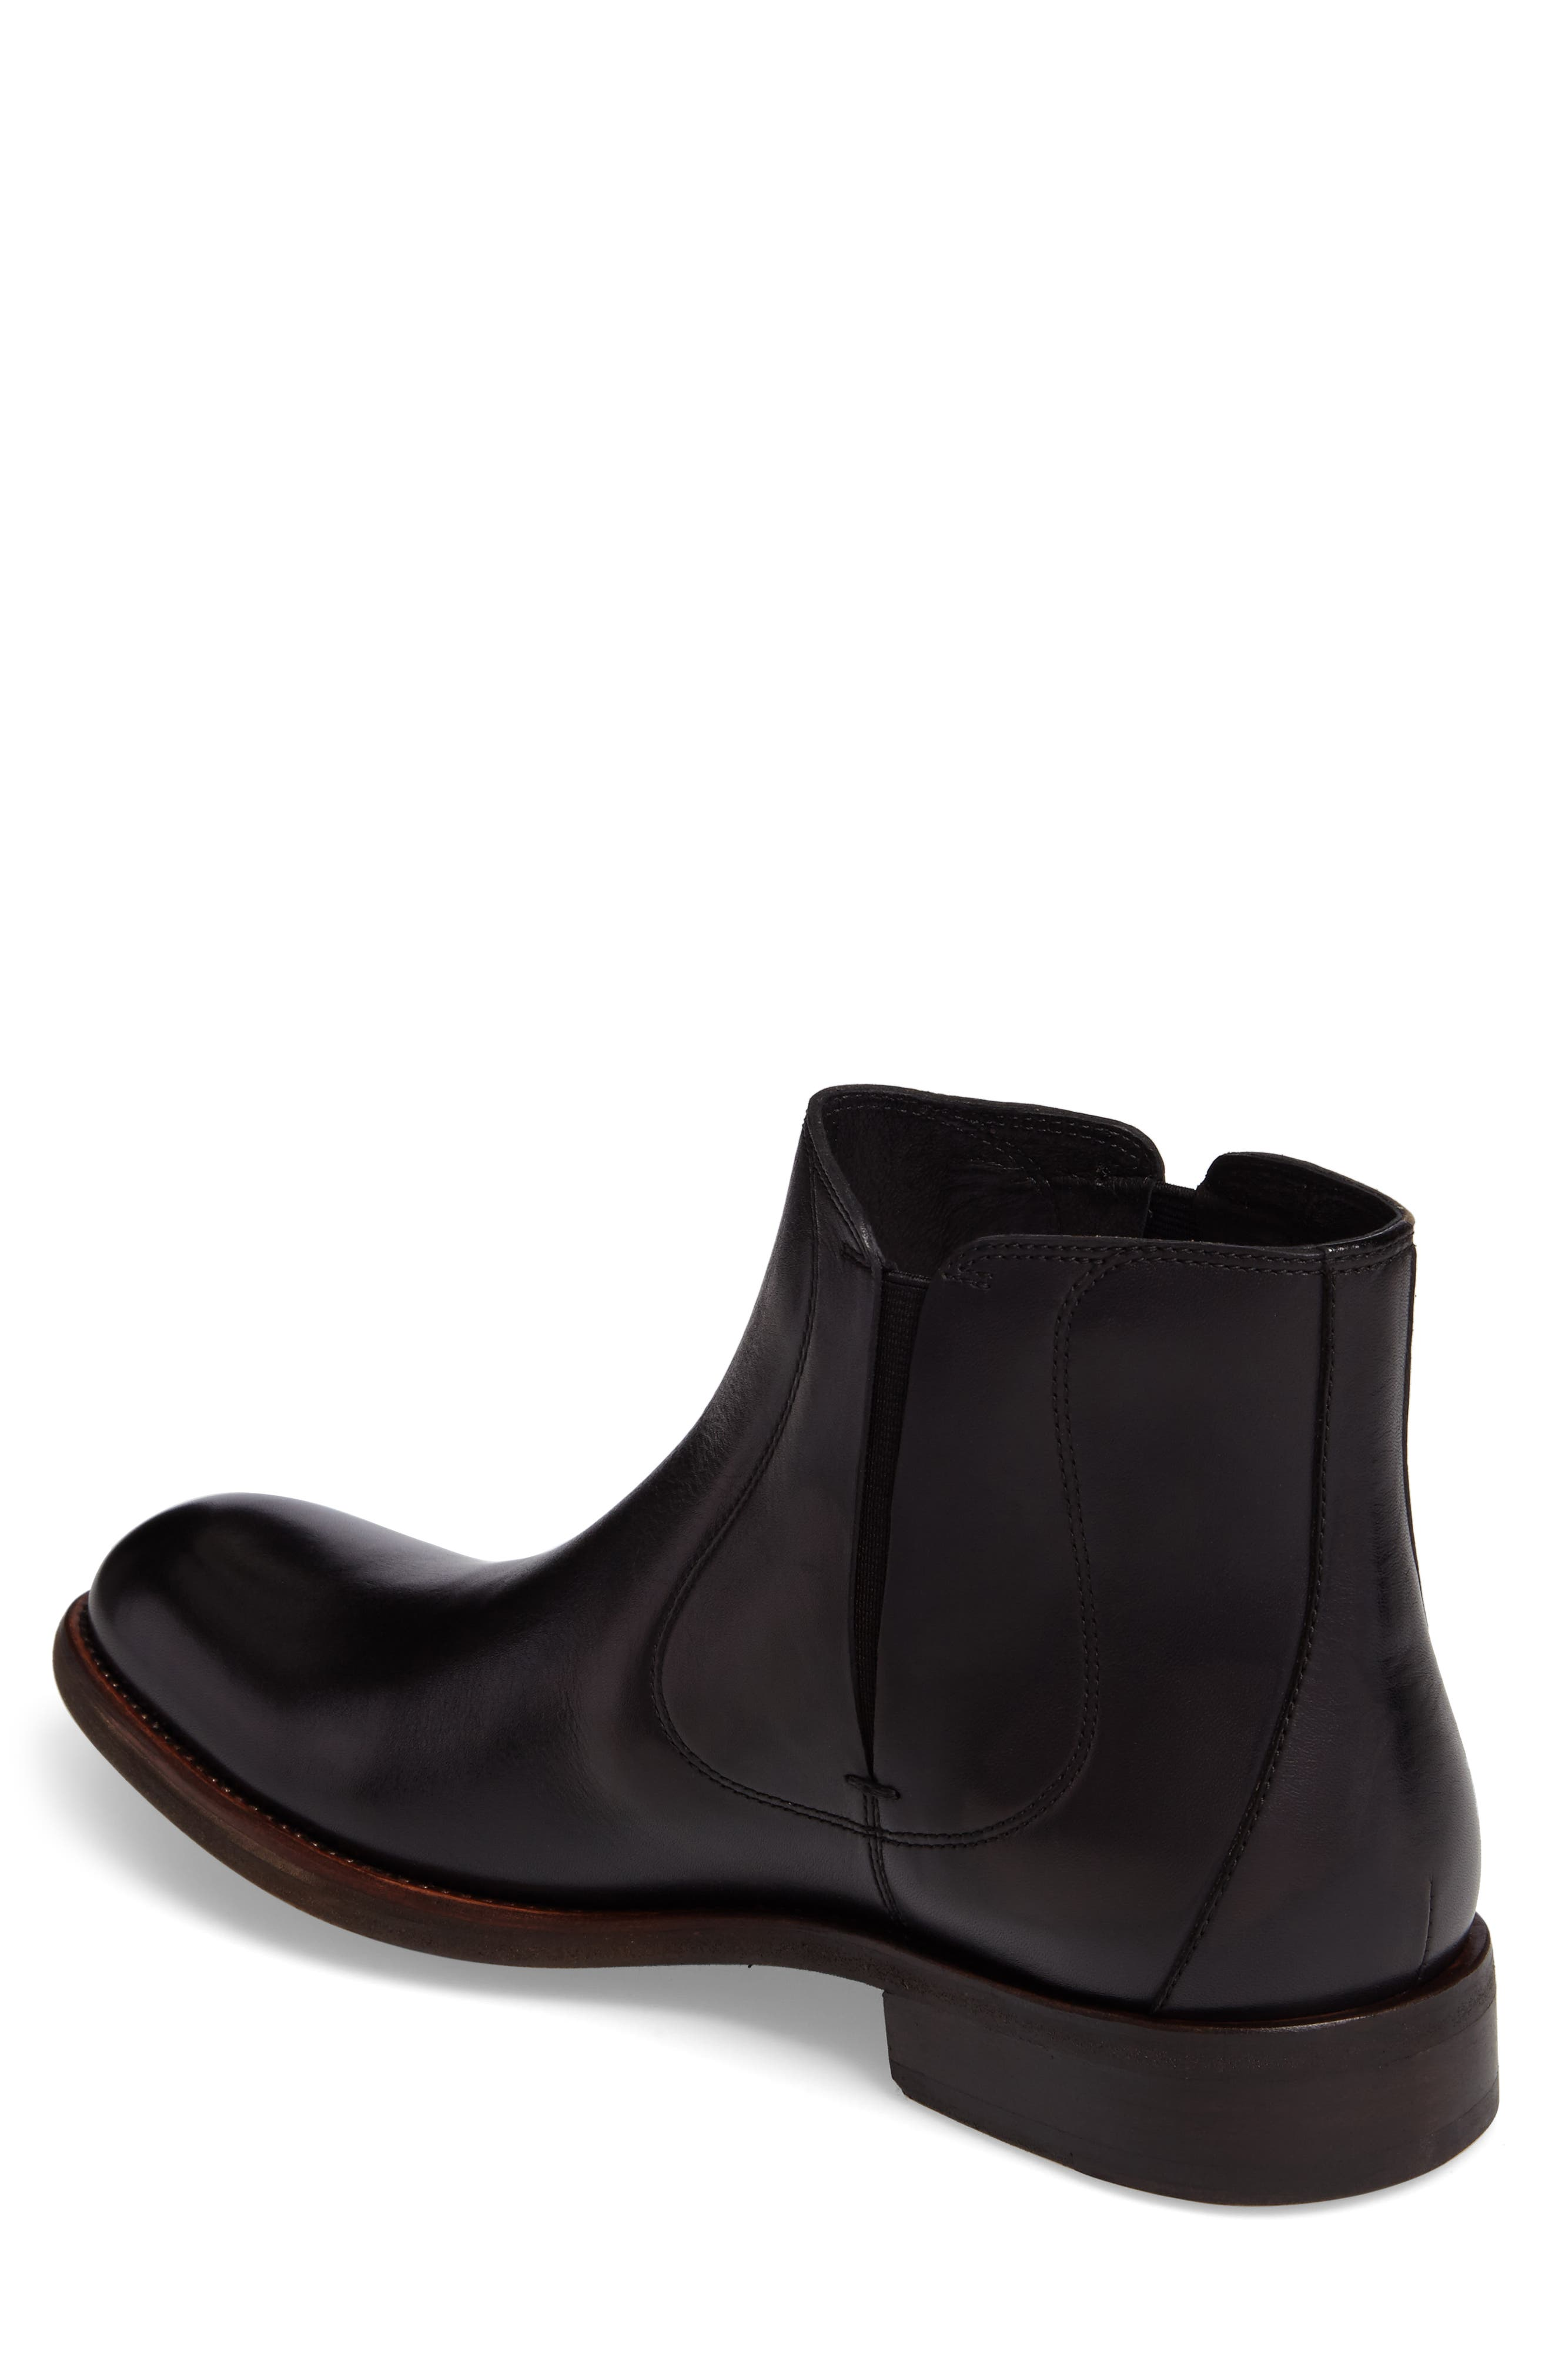 JOHN VARVATOS STAR USA, Waverley Chelsea Boot, Alternate thumbnail 2, color, BLACK LEATHER